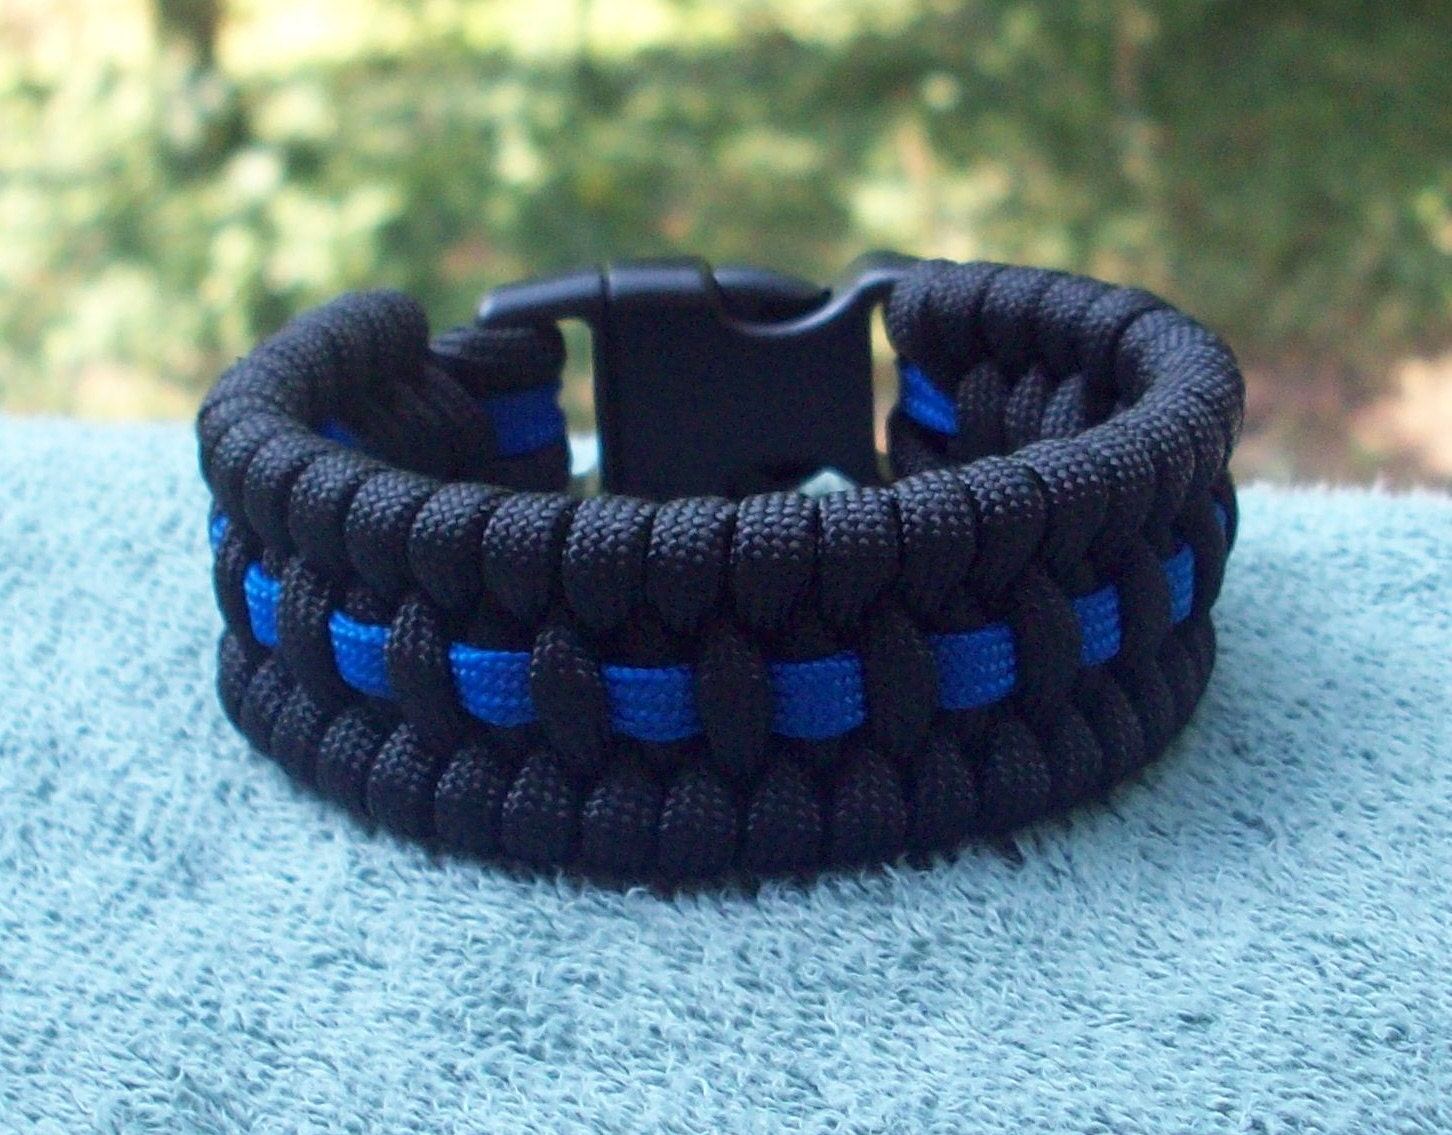 eagle edition paracord line items blue police to click medallion enlarge survival bracelet bracelets thin